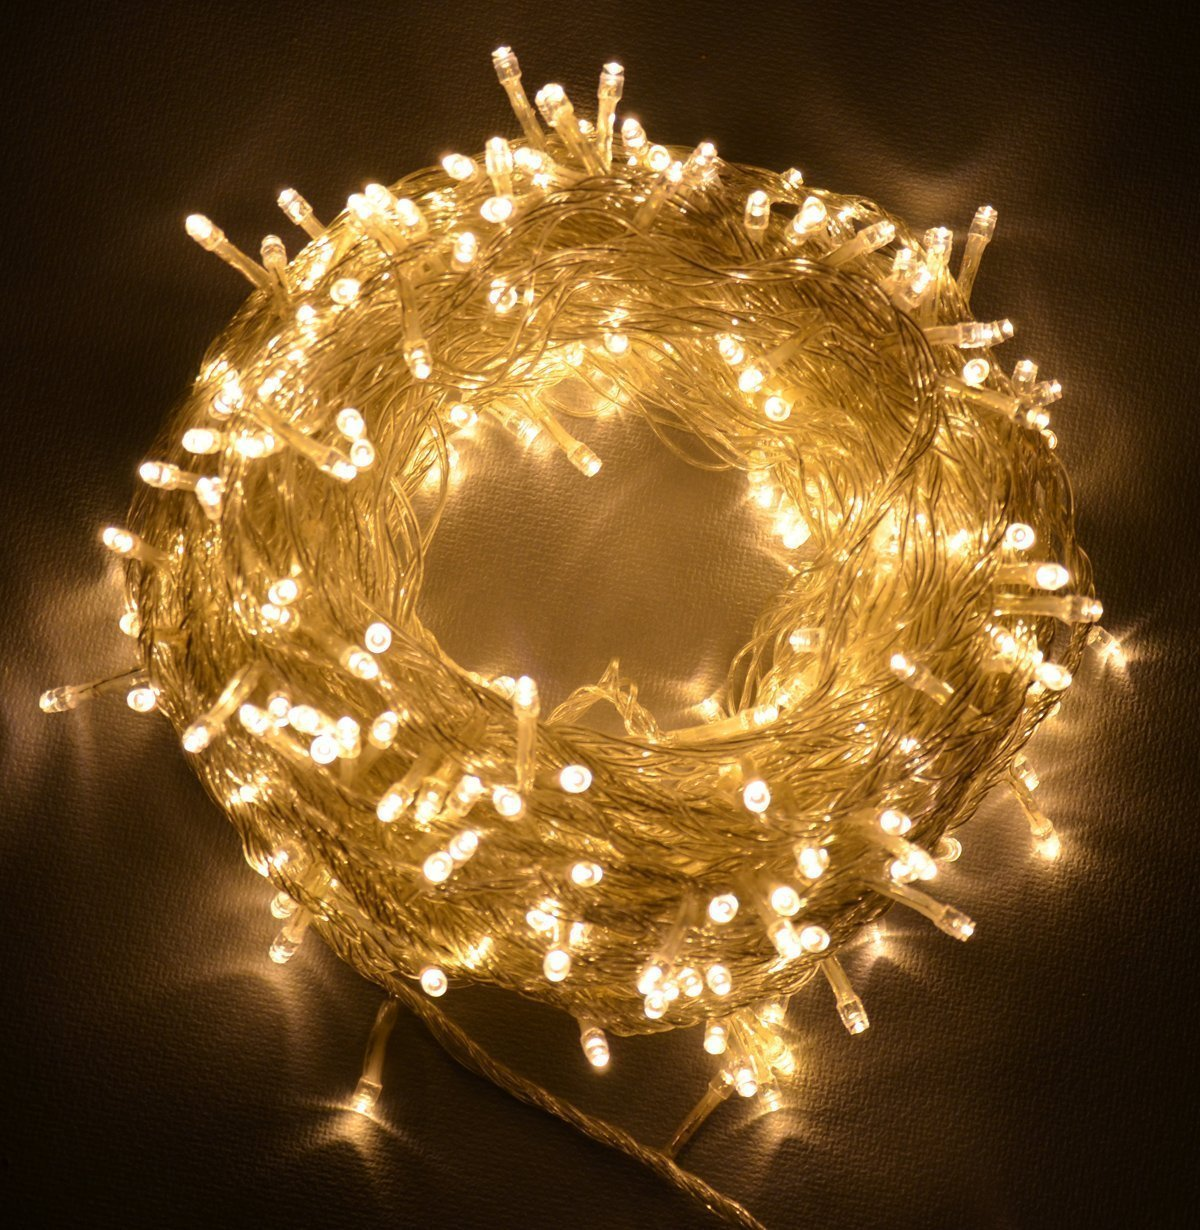 String Lights Indoor B And Q : Image Gallery indoor fairy lights string